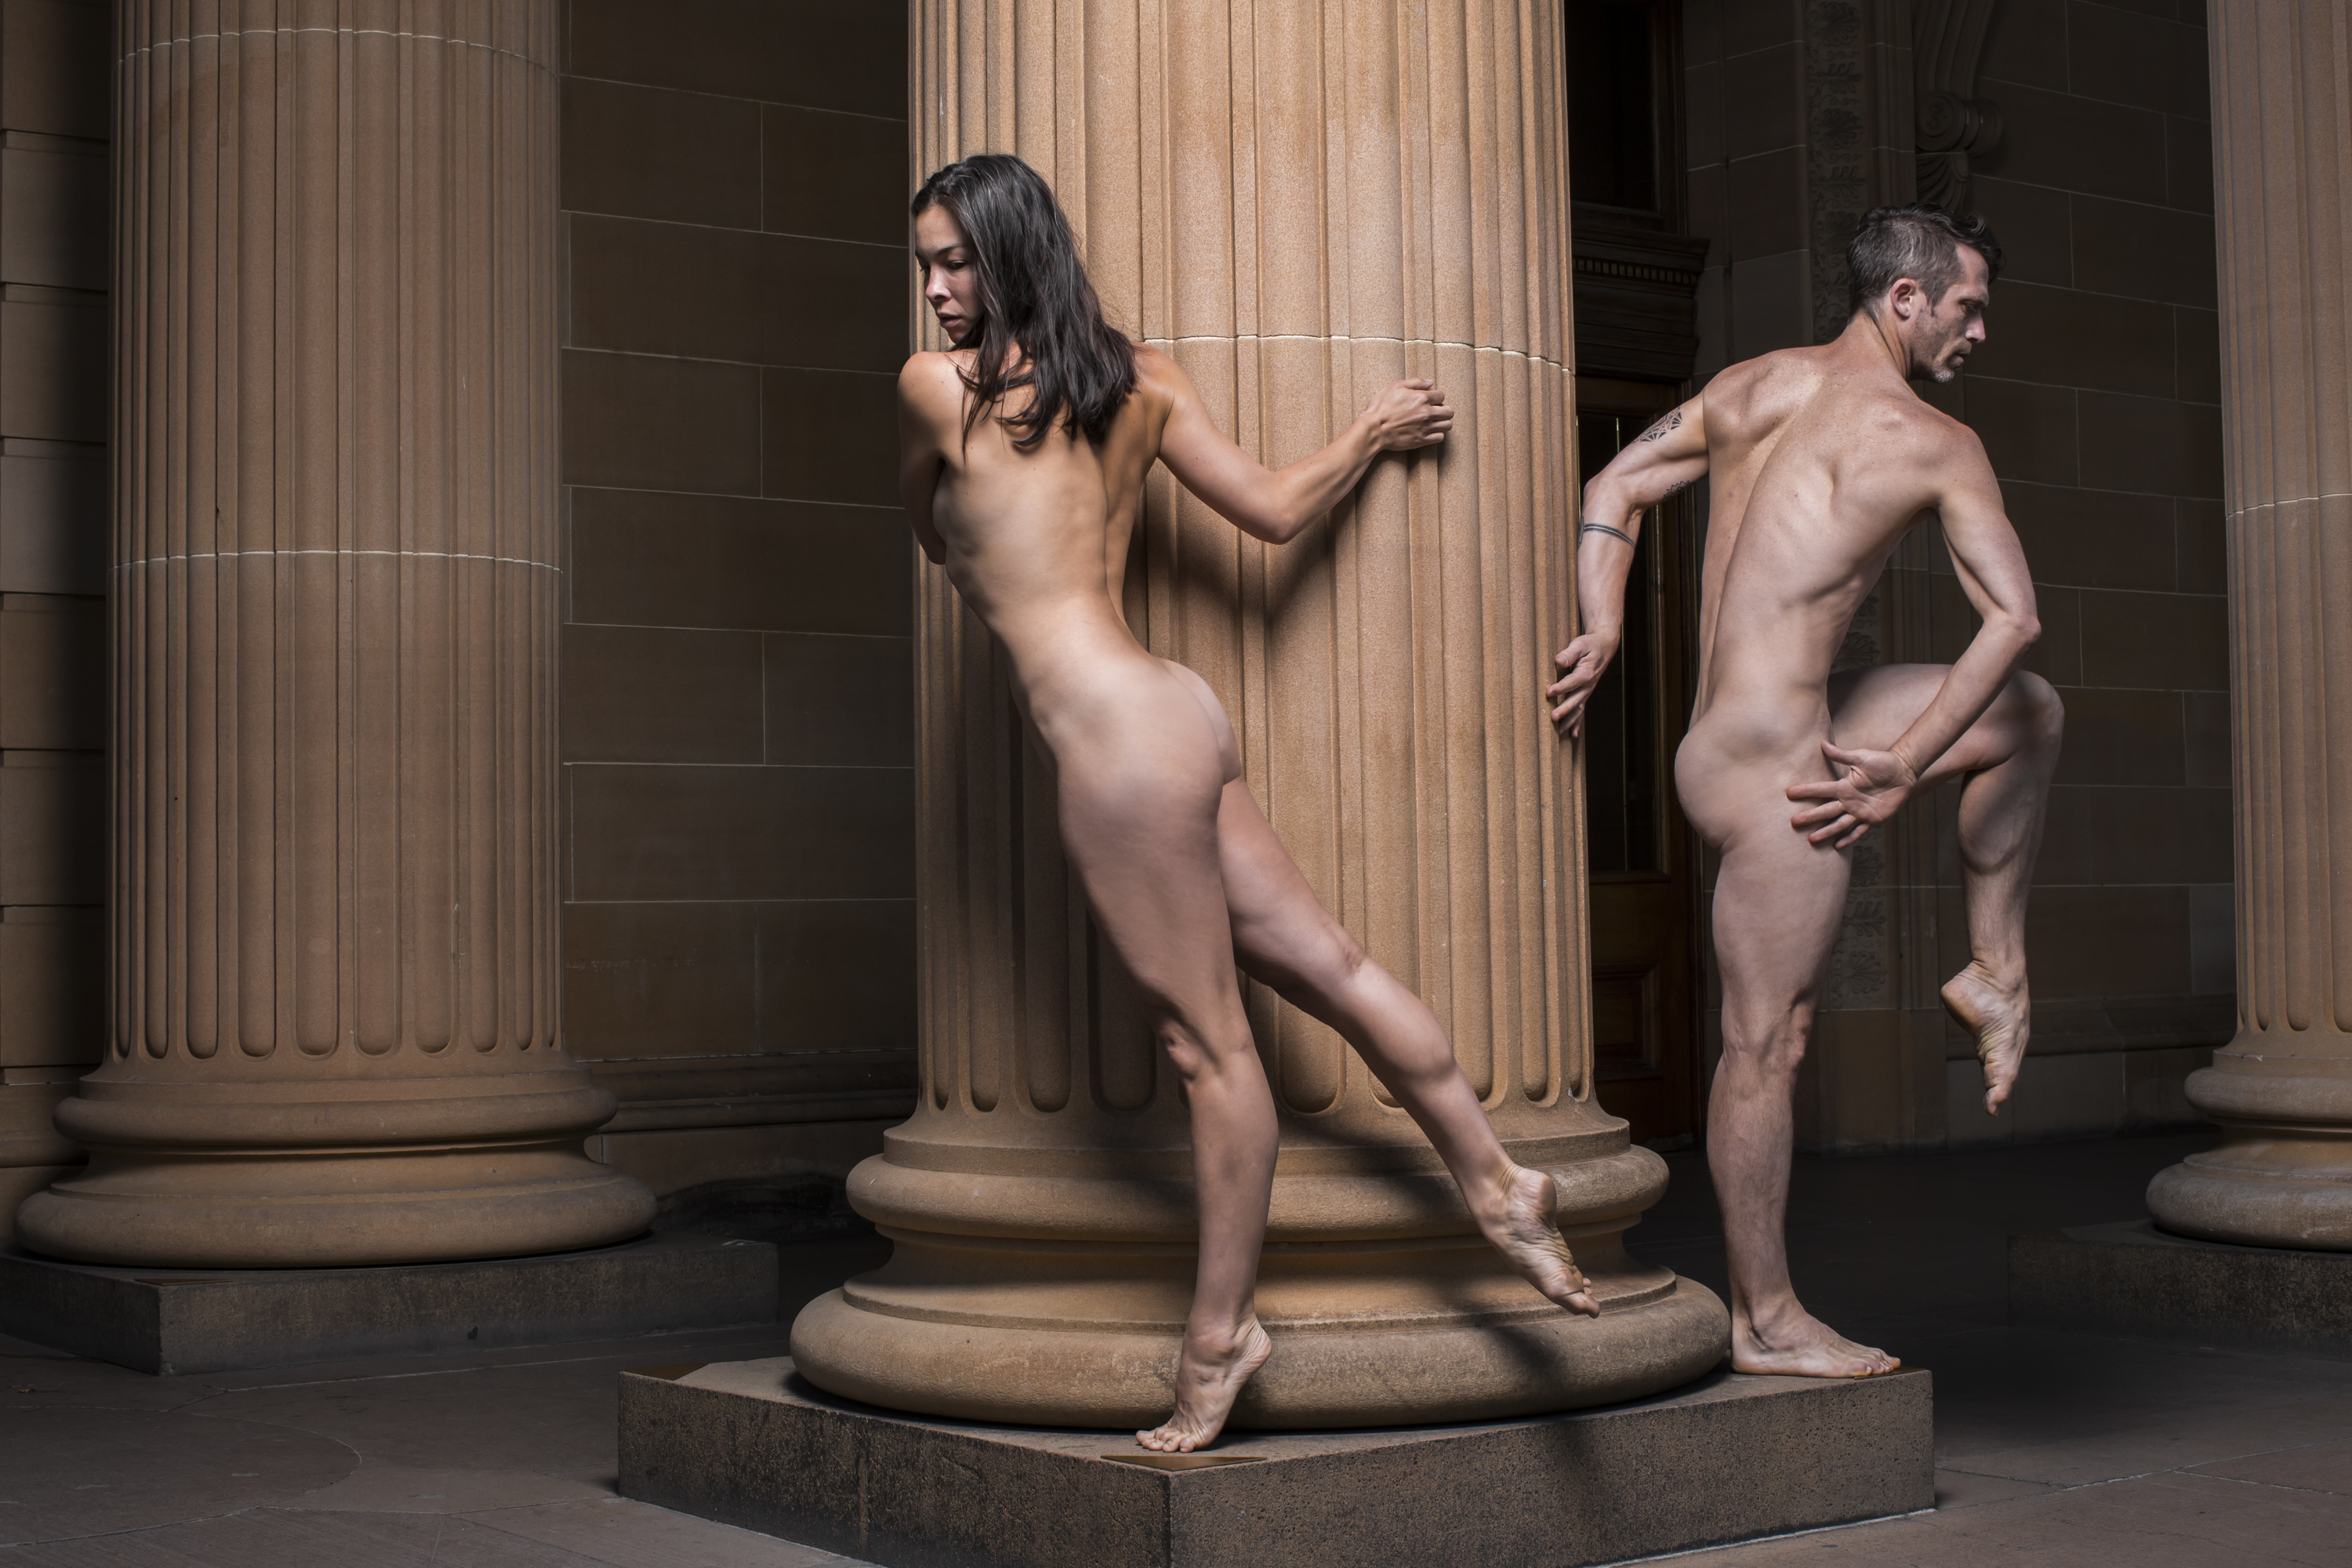 Dancers from Nude Live